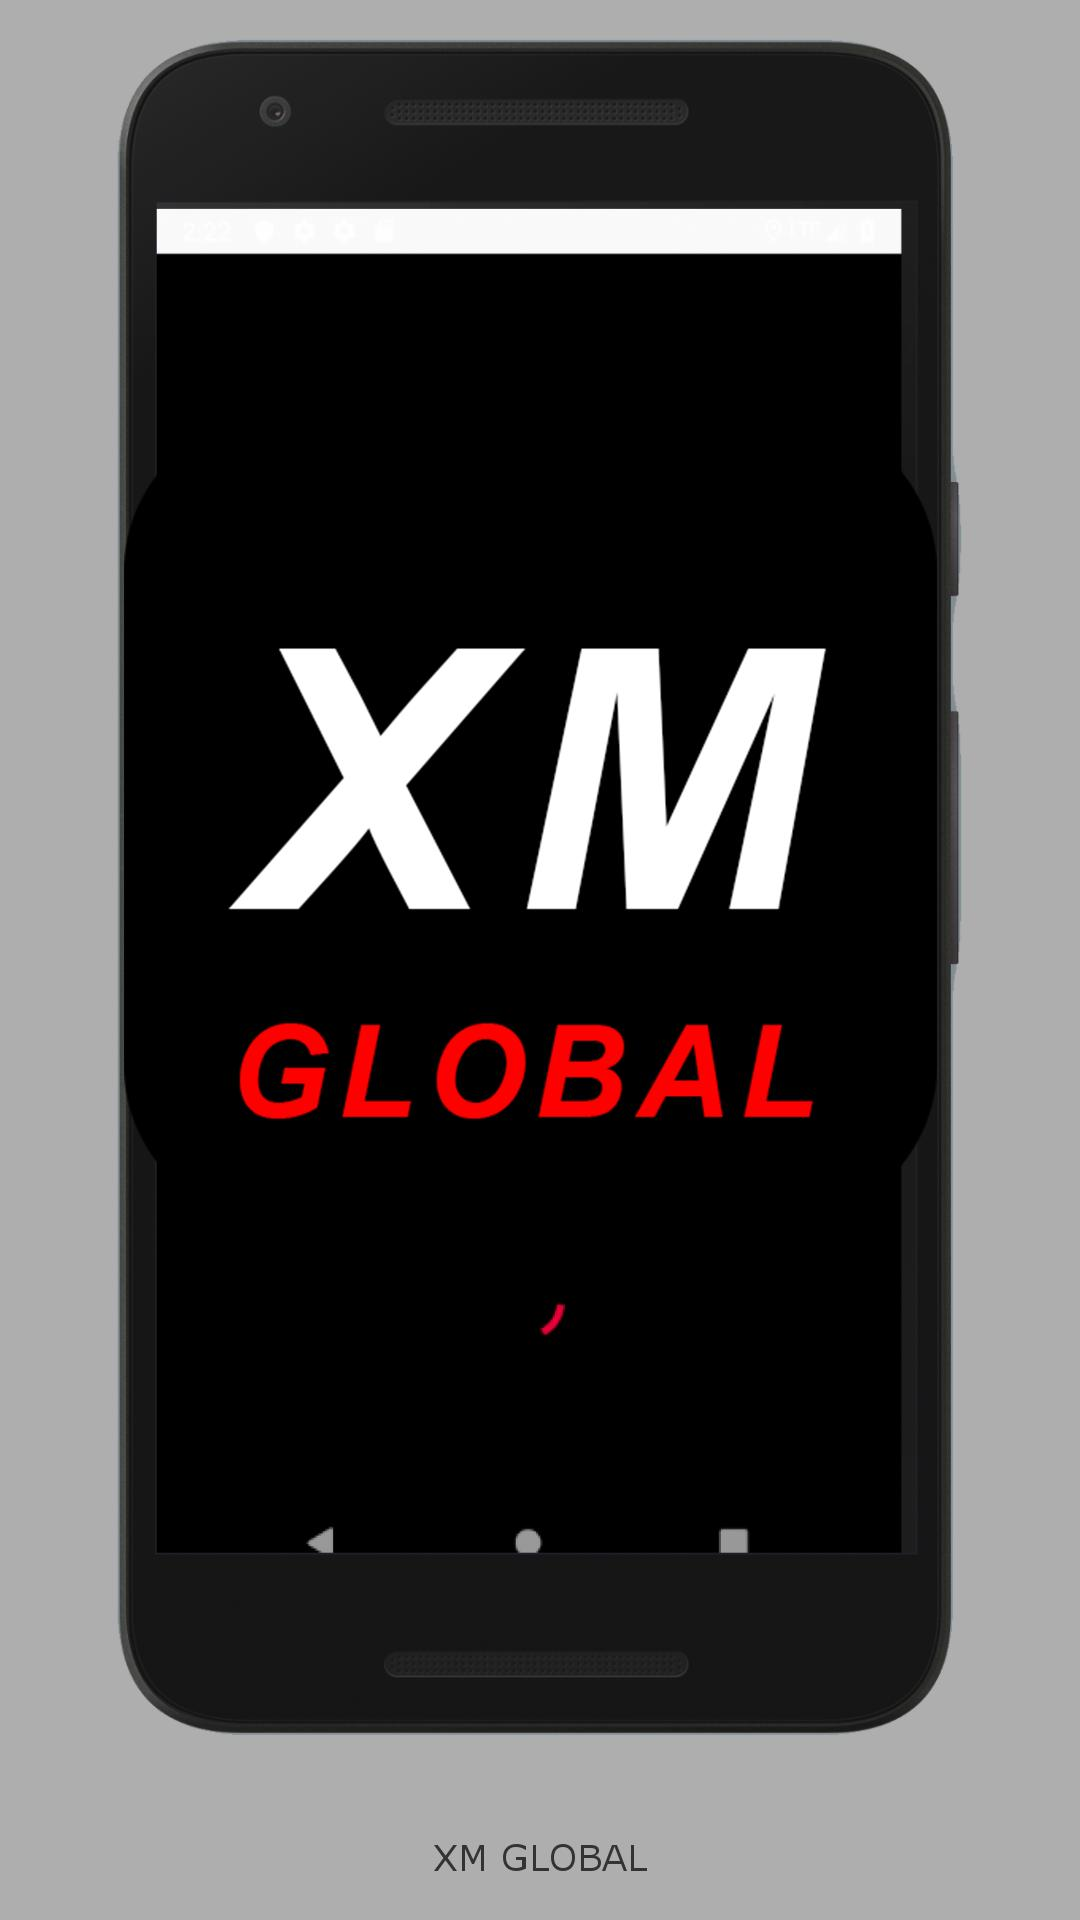 Xm forex download multi manager global investment trust pimco cayman crossover bond fund